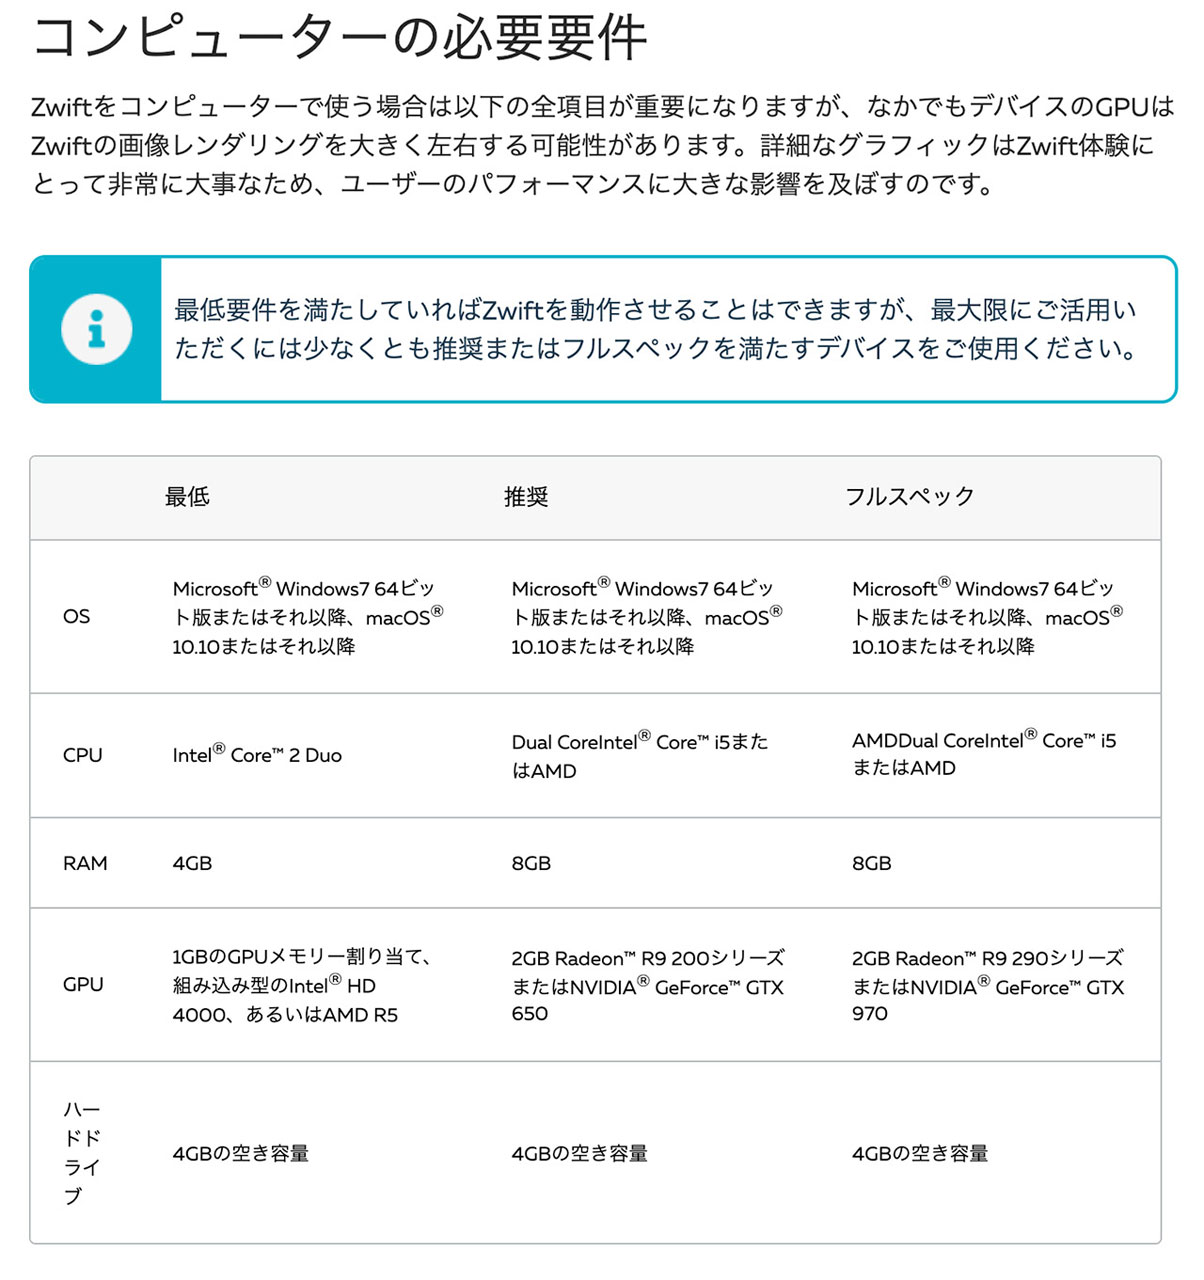 https://support.zwift.com/ja/supported-devices-to-run-zwift-H1Cj9Qbeのキャプチャ